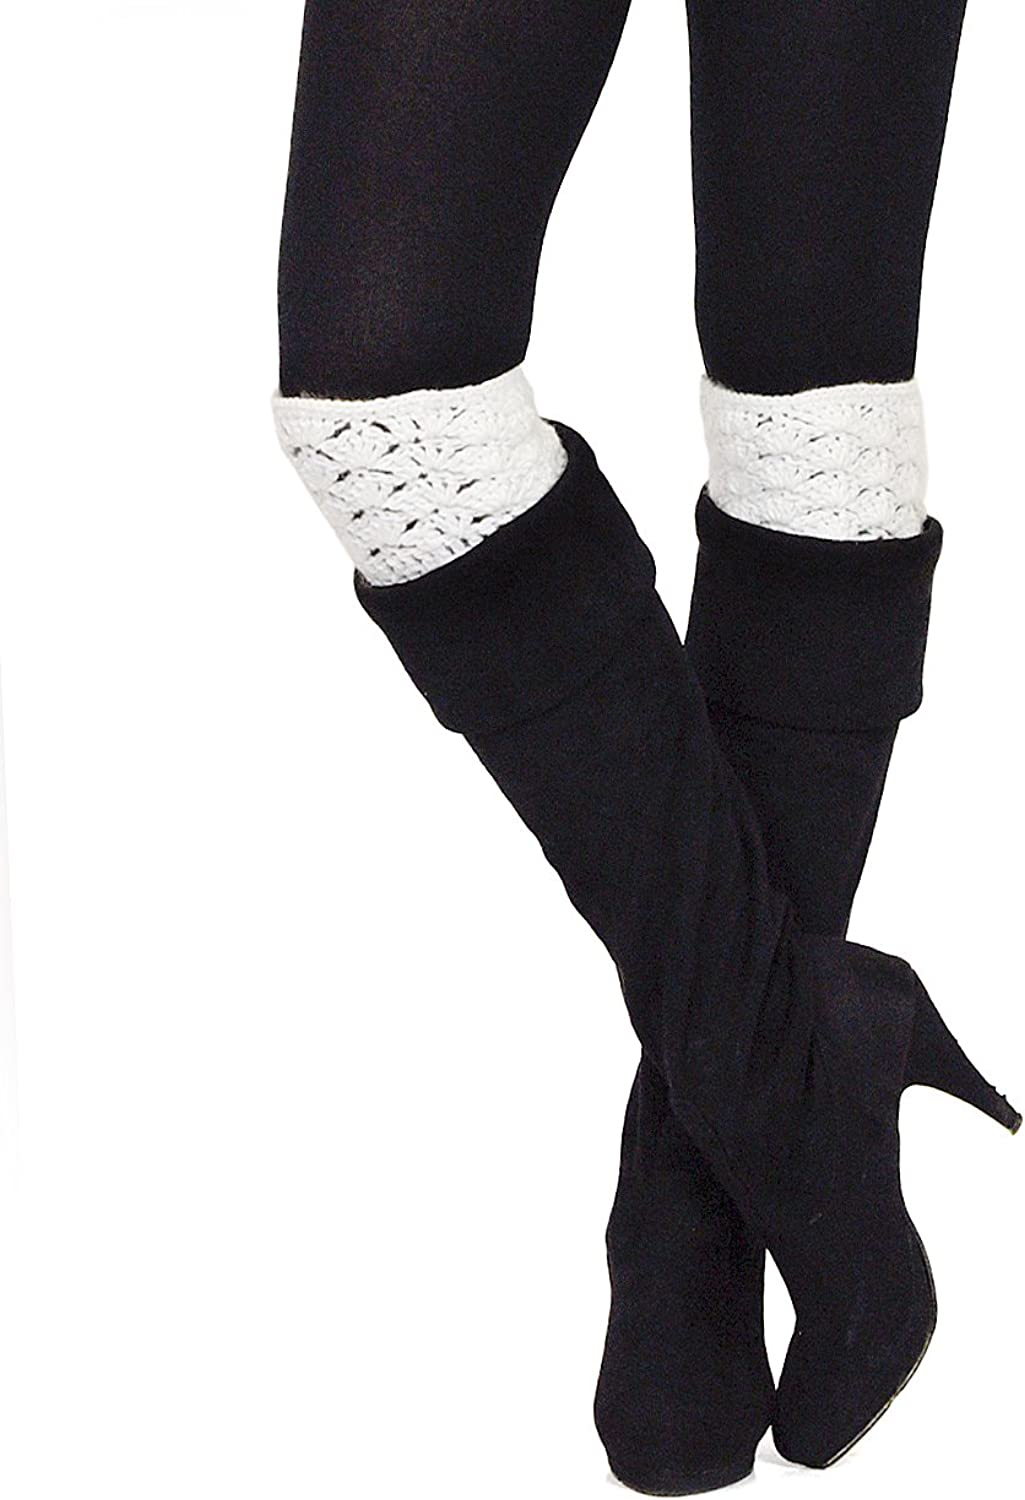 NYfashion101 Women's Fashionable Solid color Crochet Knit Soft Boot Cuff